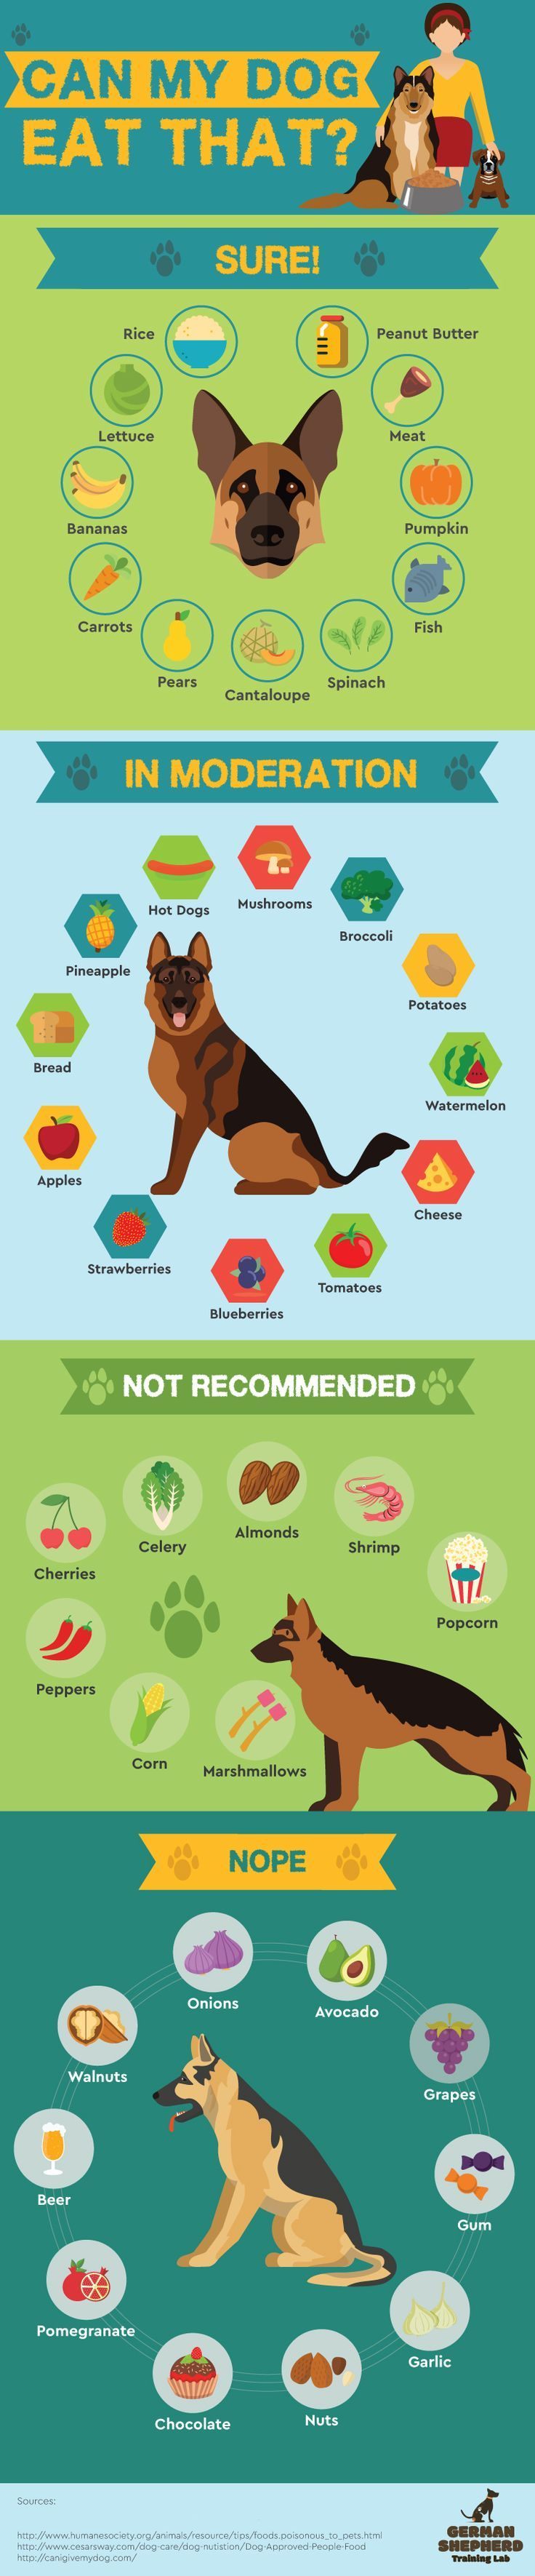 See more HERE: https://www.sunfrog.com/Pets/LOVE-German-Shepherd-Dog-Black-Guys.html?53507  Safe Human Food For Your Dogs Info Graphic